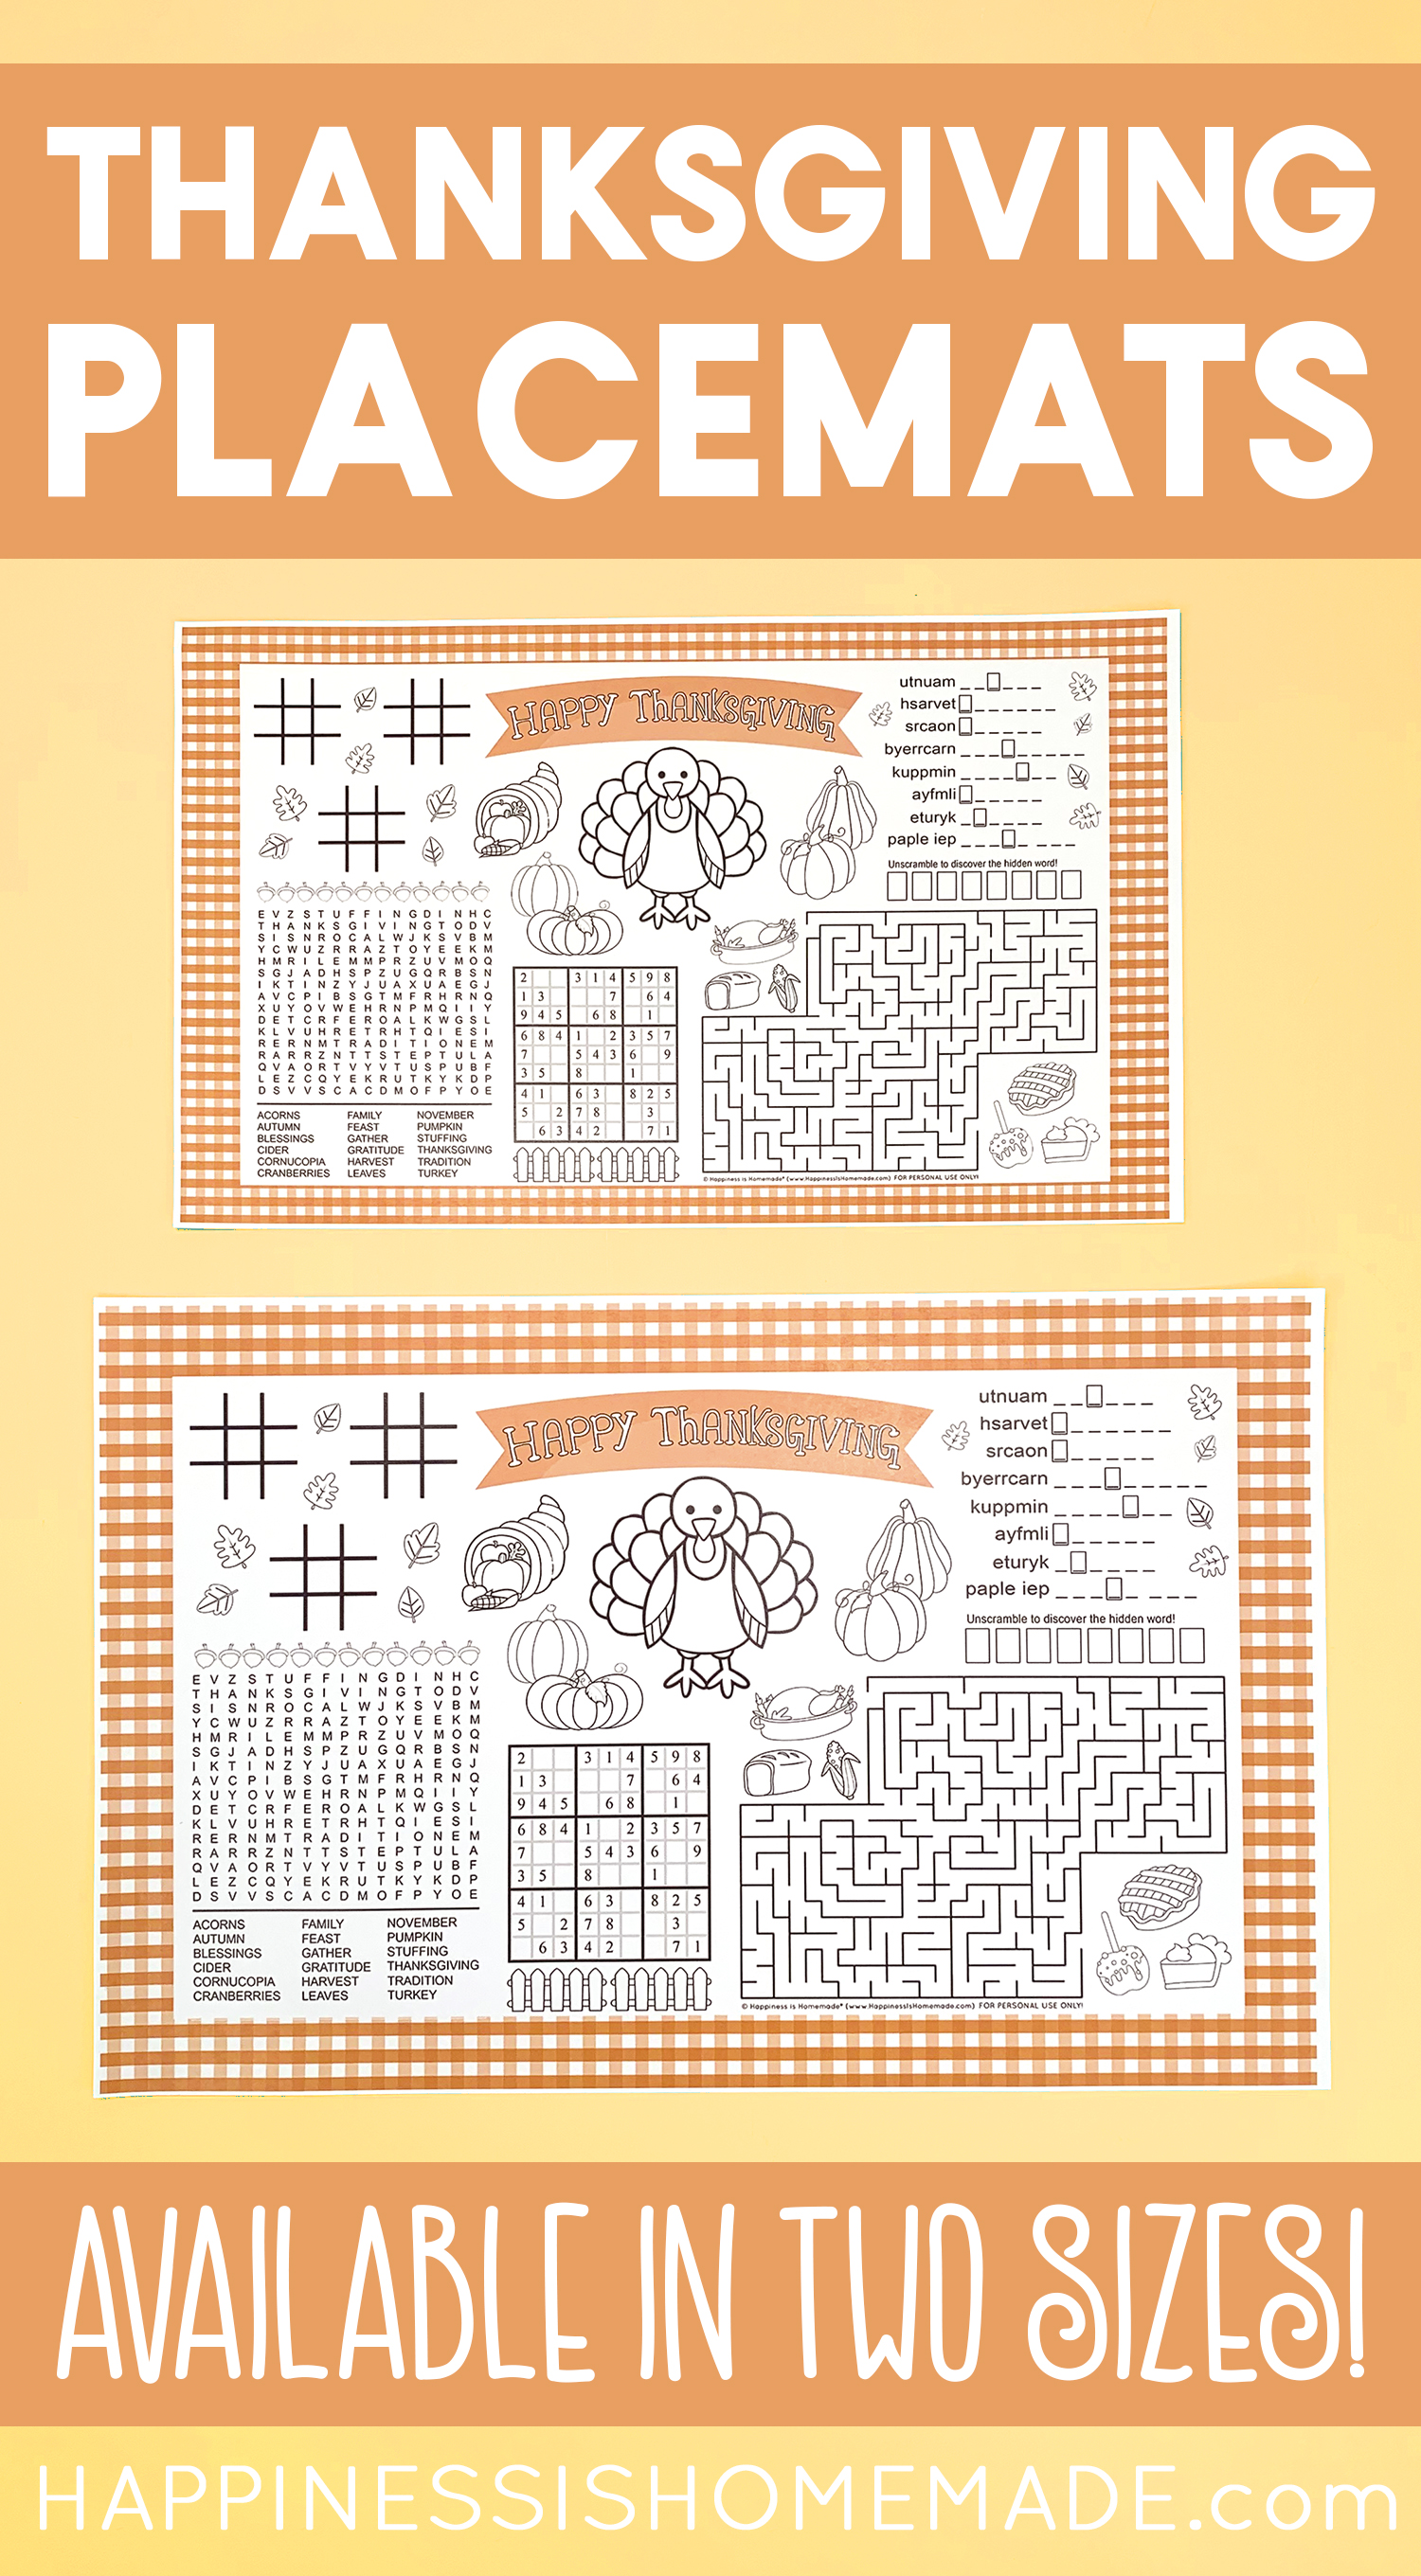 Printable Thanksgiving Placemats for Kids: These adorable printable Thanksgiving placemats have tons of games and activities to keep kids busy before, during, and after Thanksgiving dinner! via @hihomemadeblog